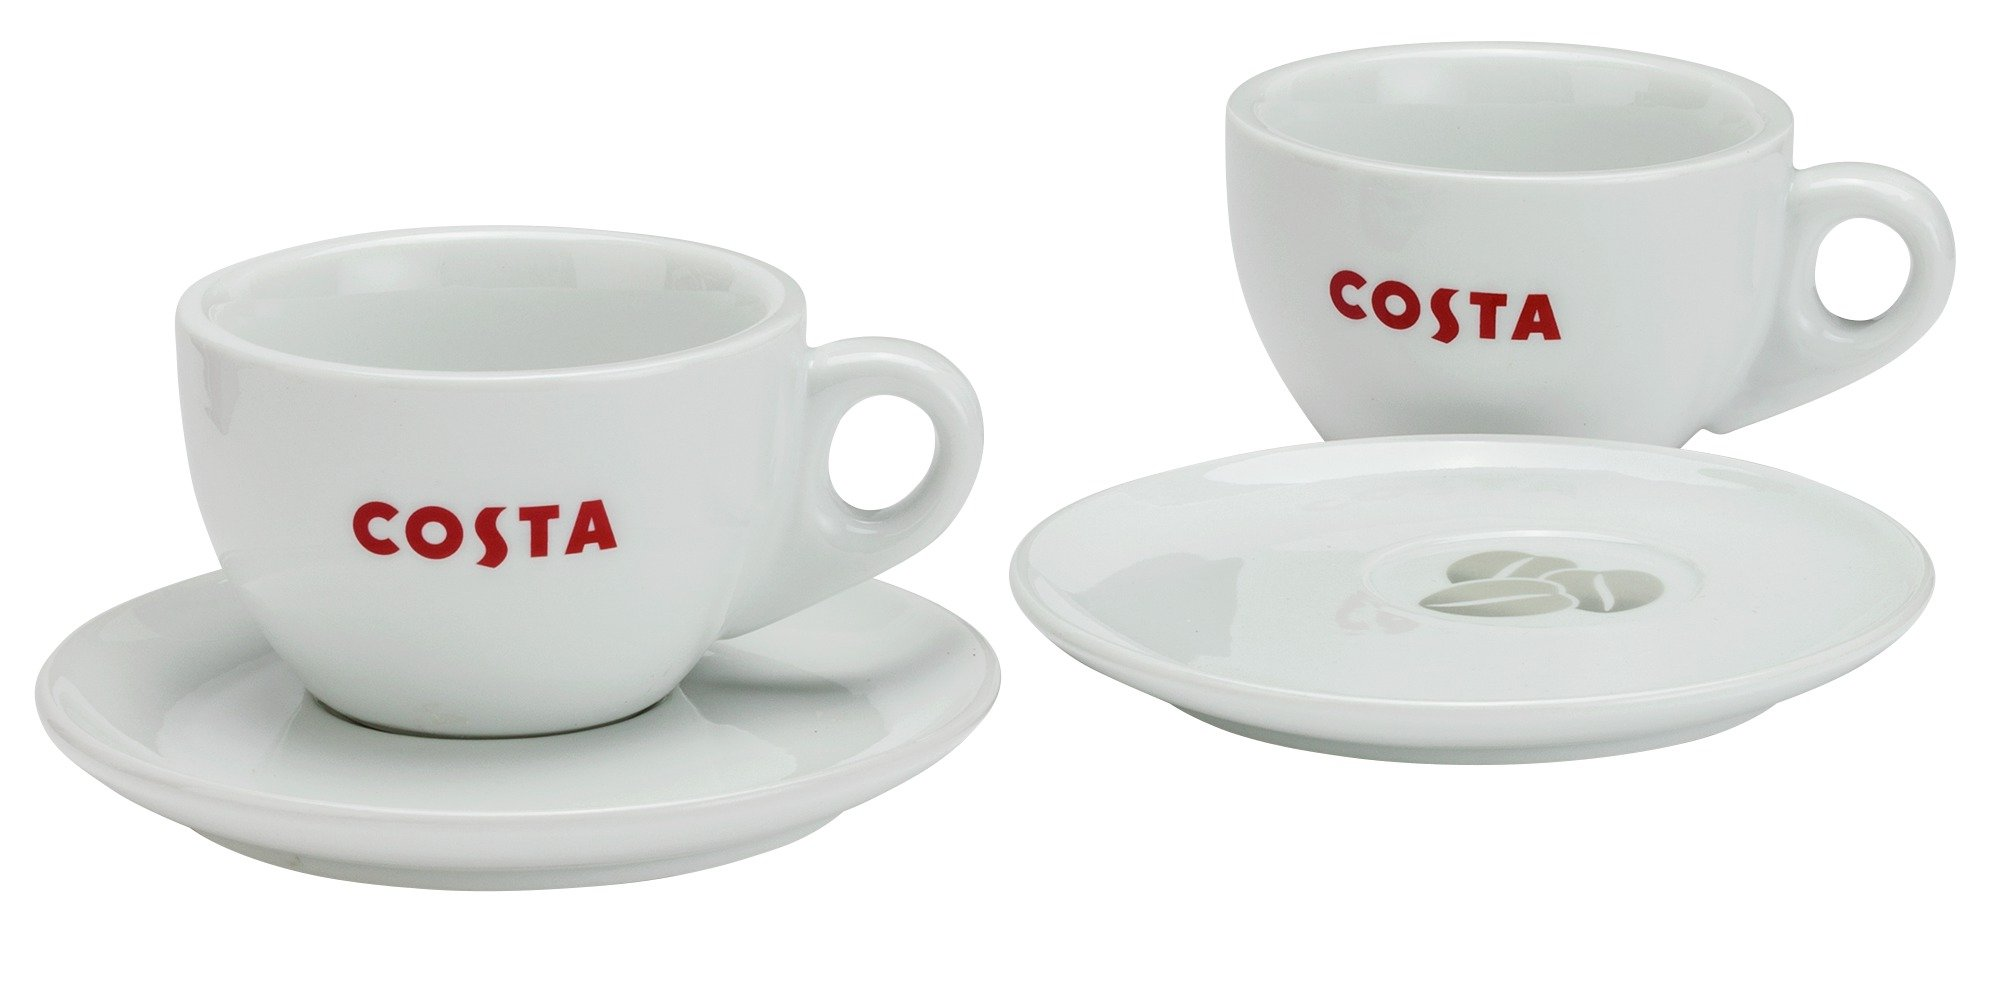 Image of Costa Cup and Saucer Duo Set